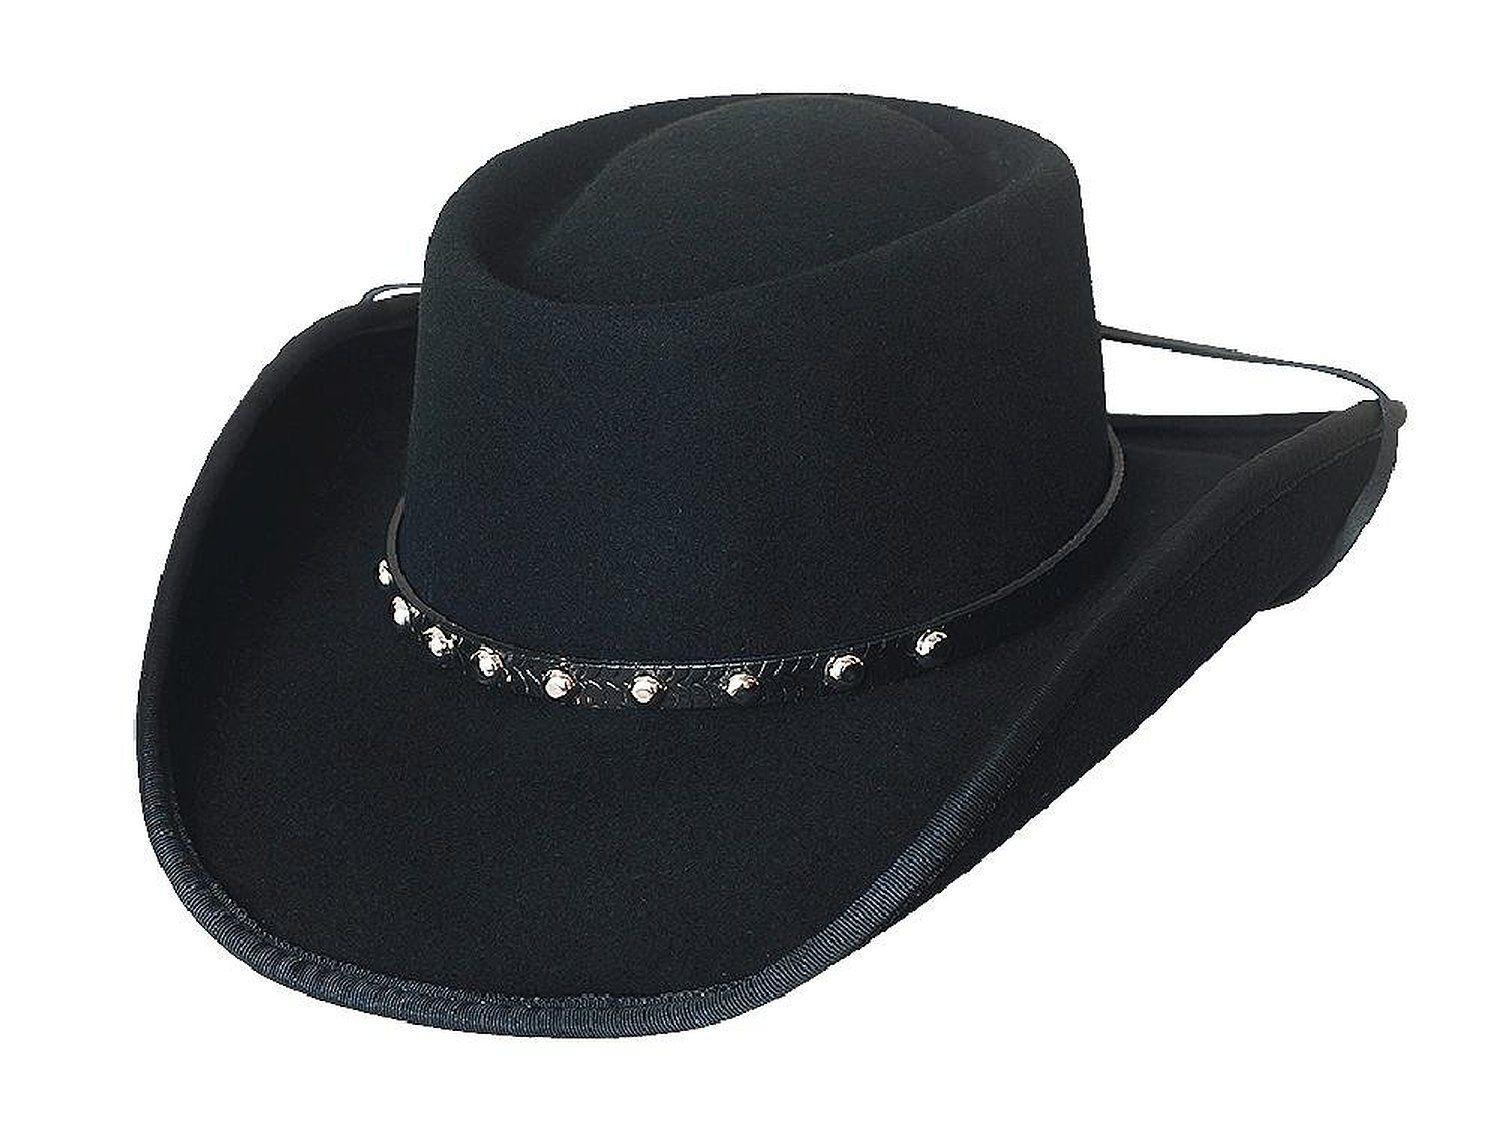 72d682a378f Django Unchained   Bullhide Unchained Montecarlo Hat (1500×1128 ...